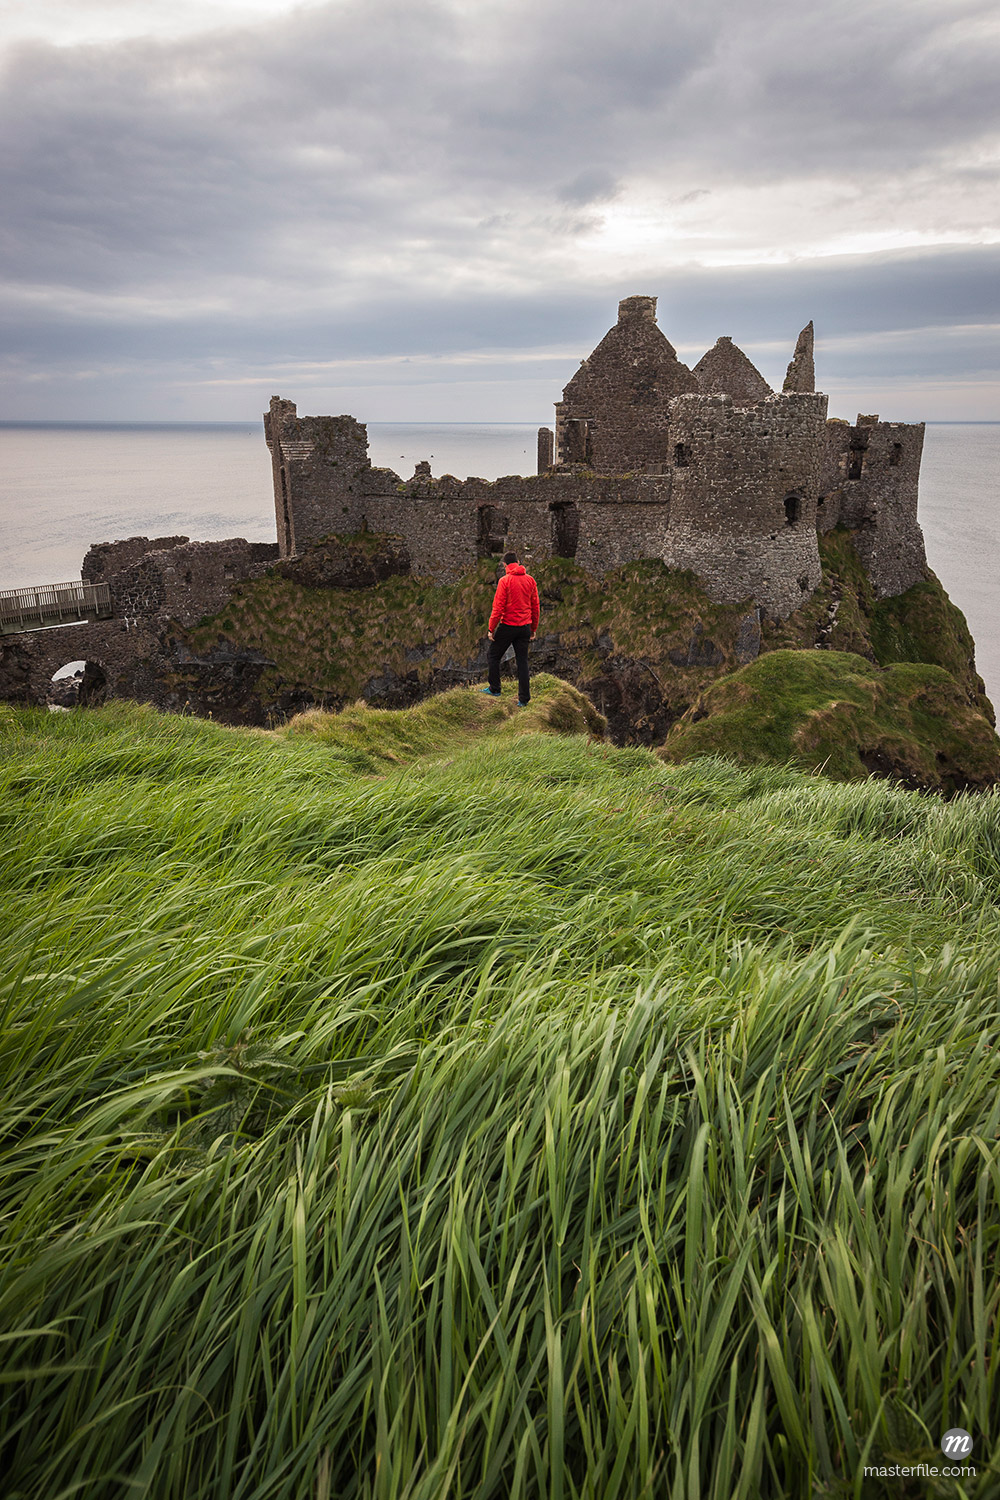 Dunluce Castle ruins, Northern Ireland, County Antrim © ClickAlps / Masterfile